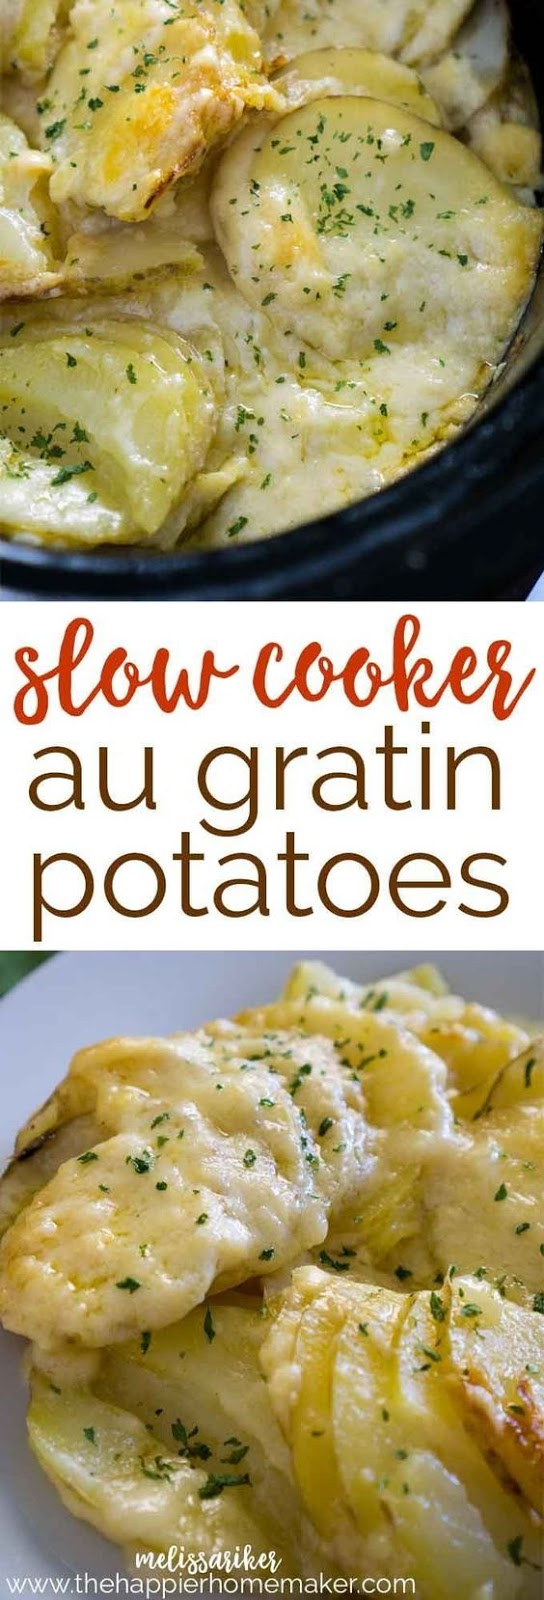 SLOW COOKER AU GRATIN POTATOES RECIPES